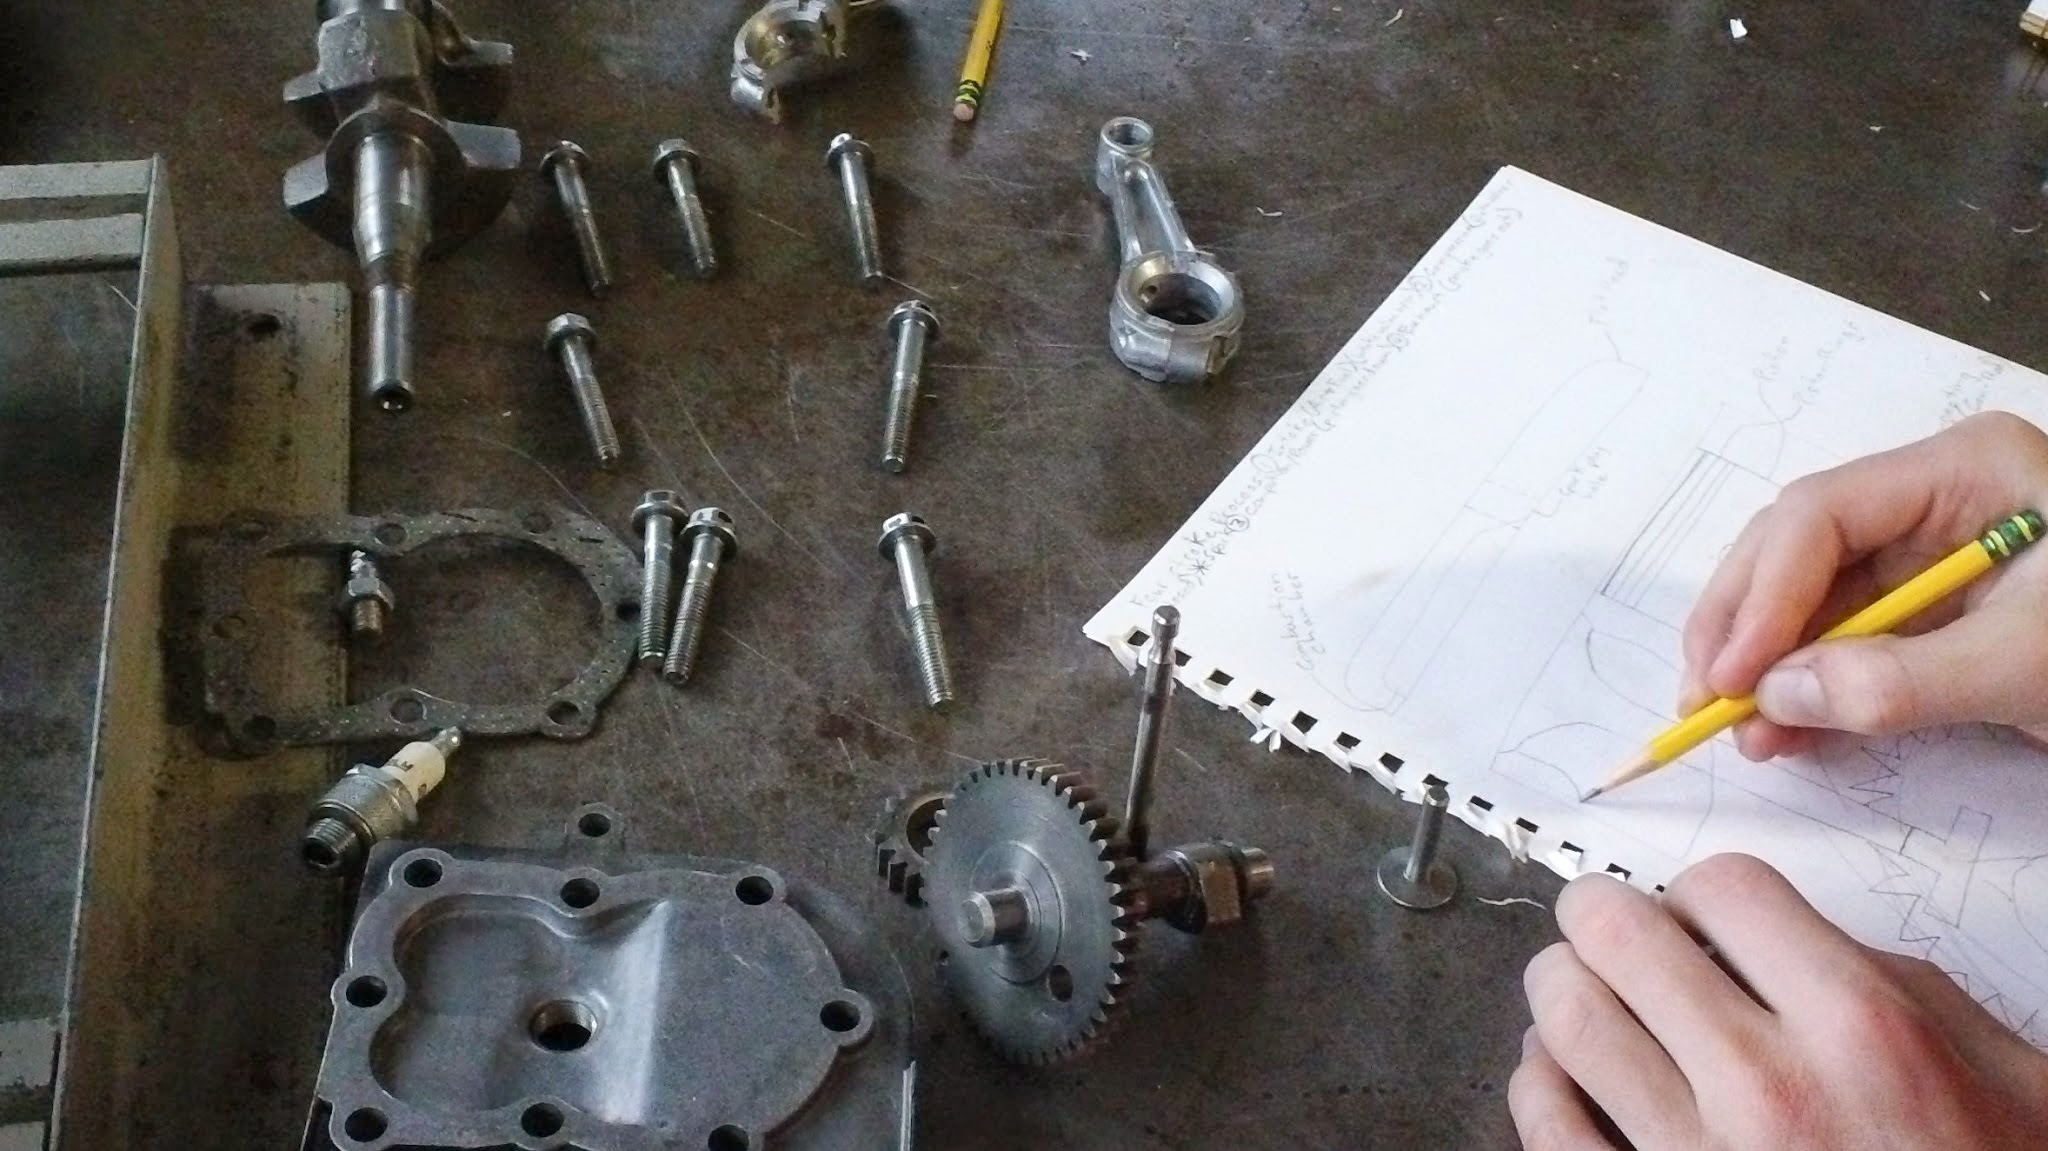 Here you can see examples of the engine parts.